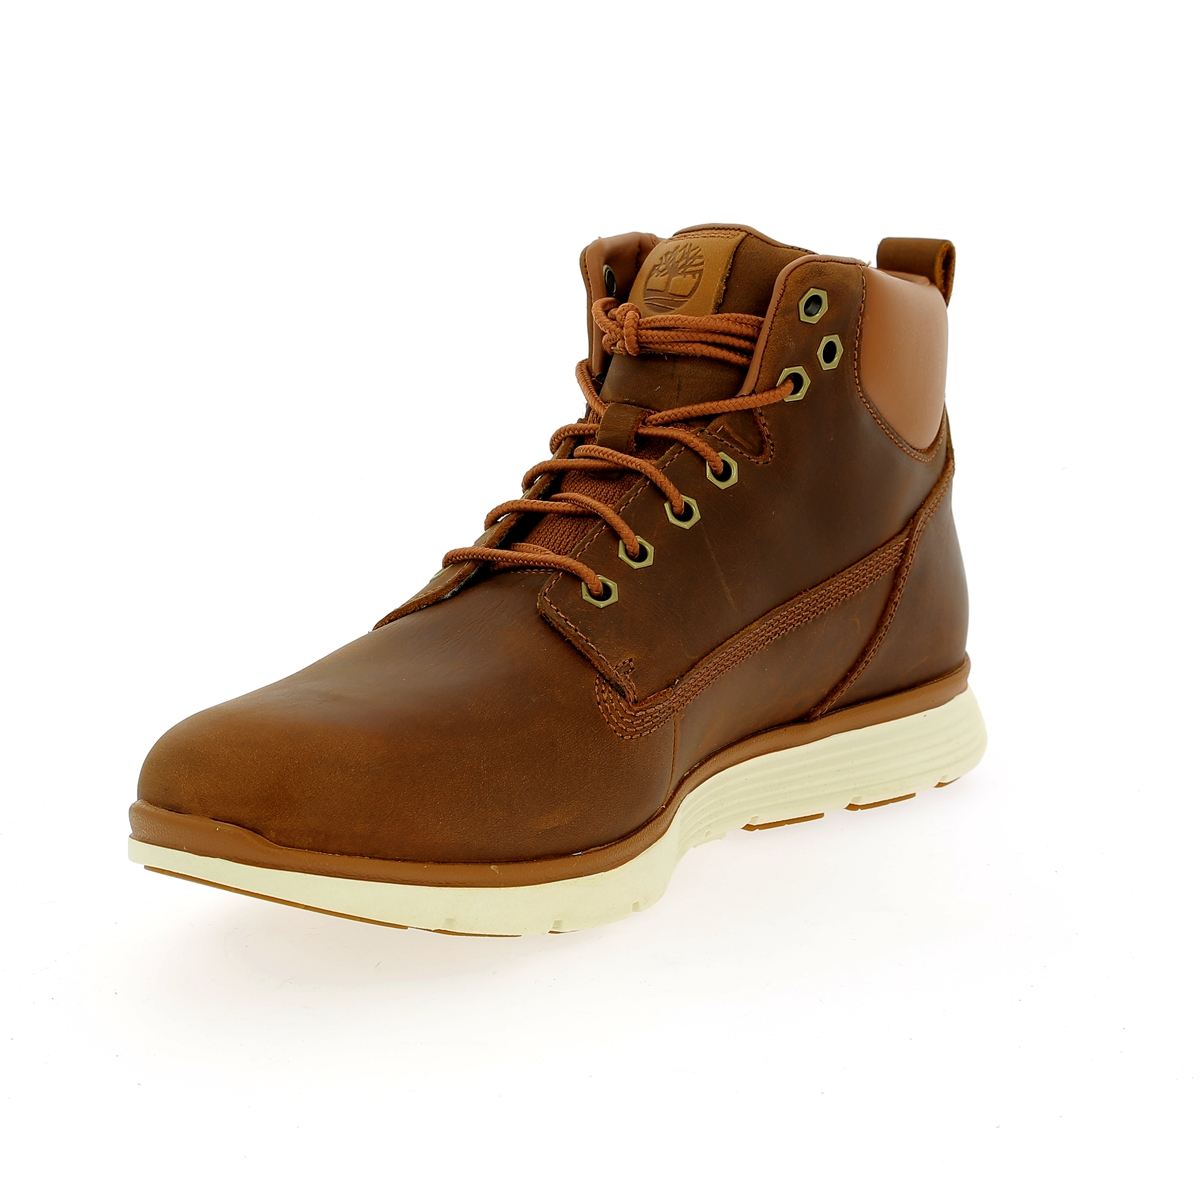 Timberland Bottines cognac